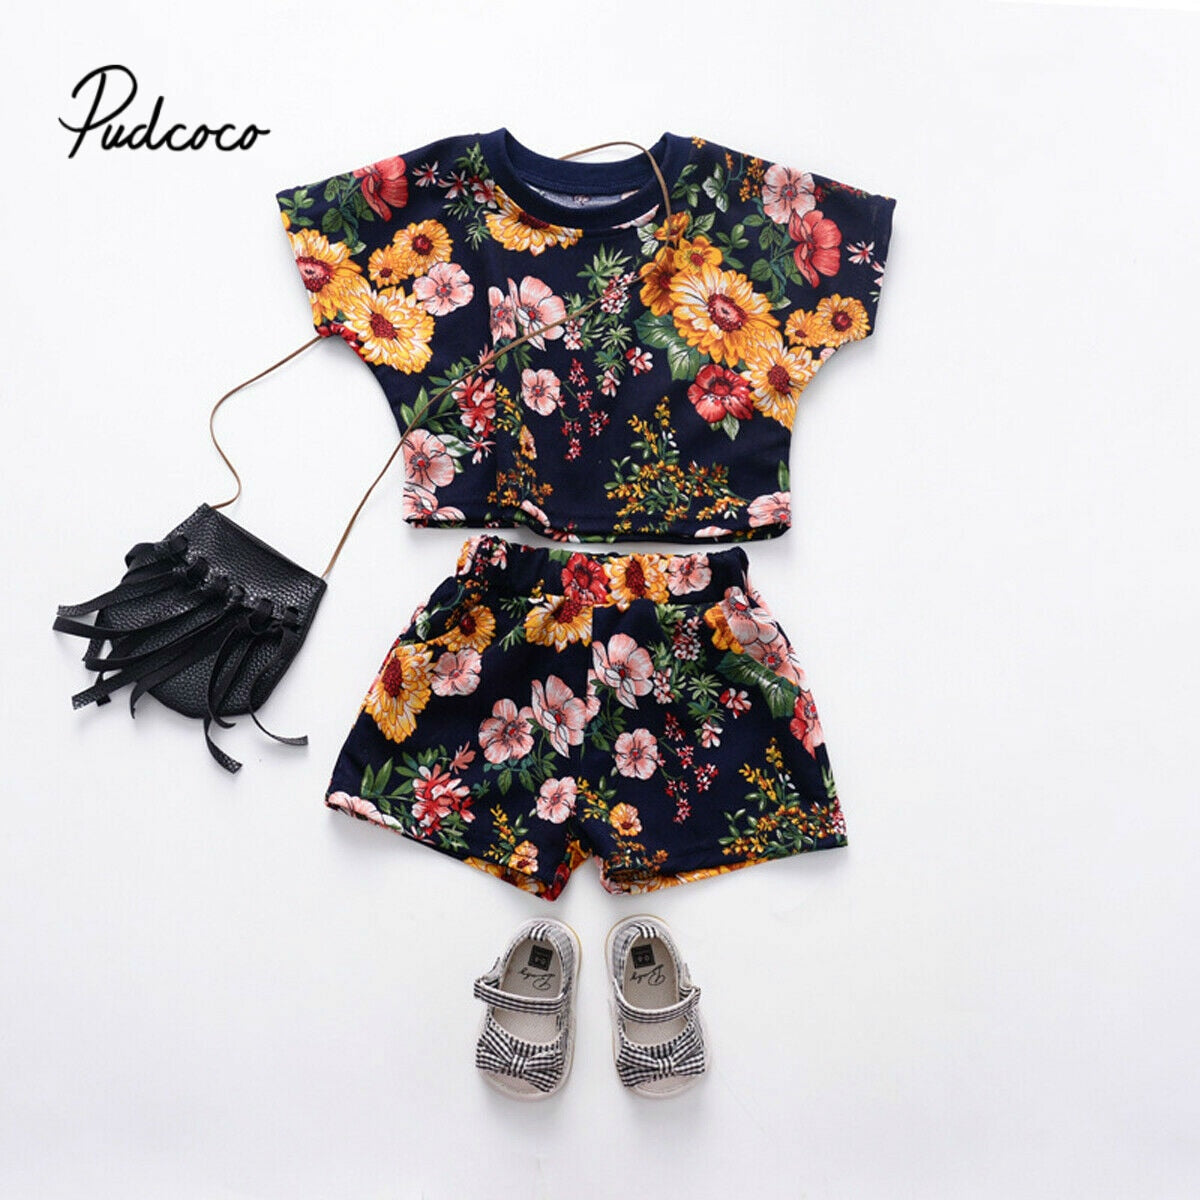 2Pcs Newborn Infant Baby Girl clothes set Batwing Short Sleeve Loose Tops +Short Pants outfit Summer clothes set